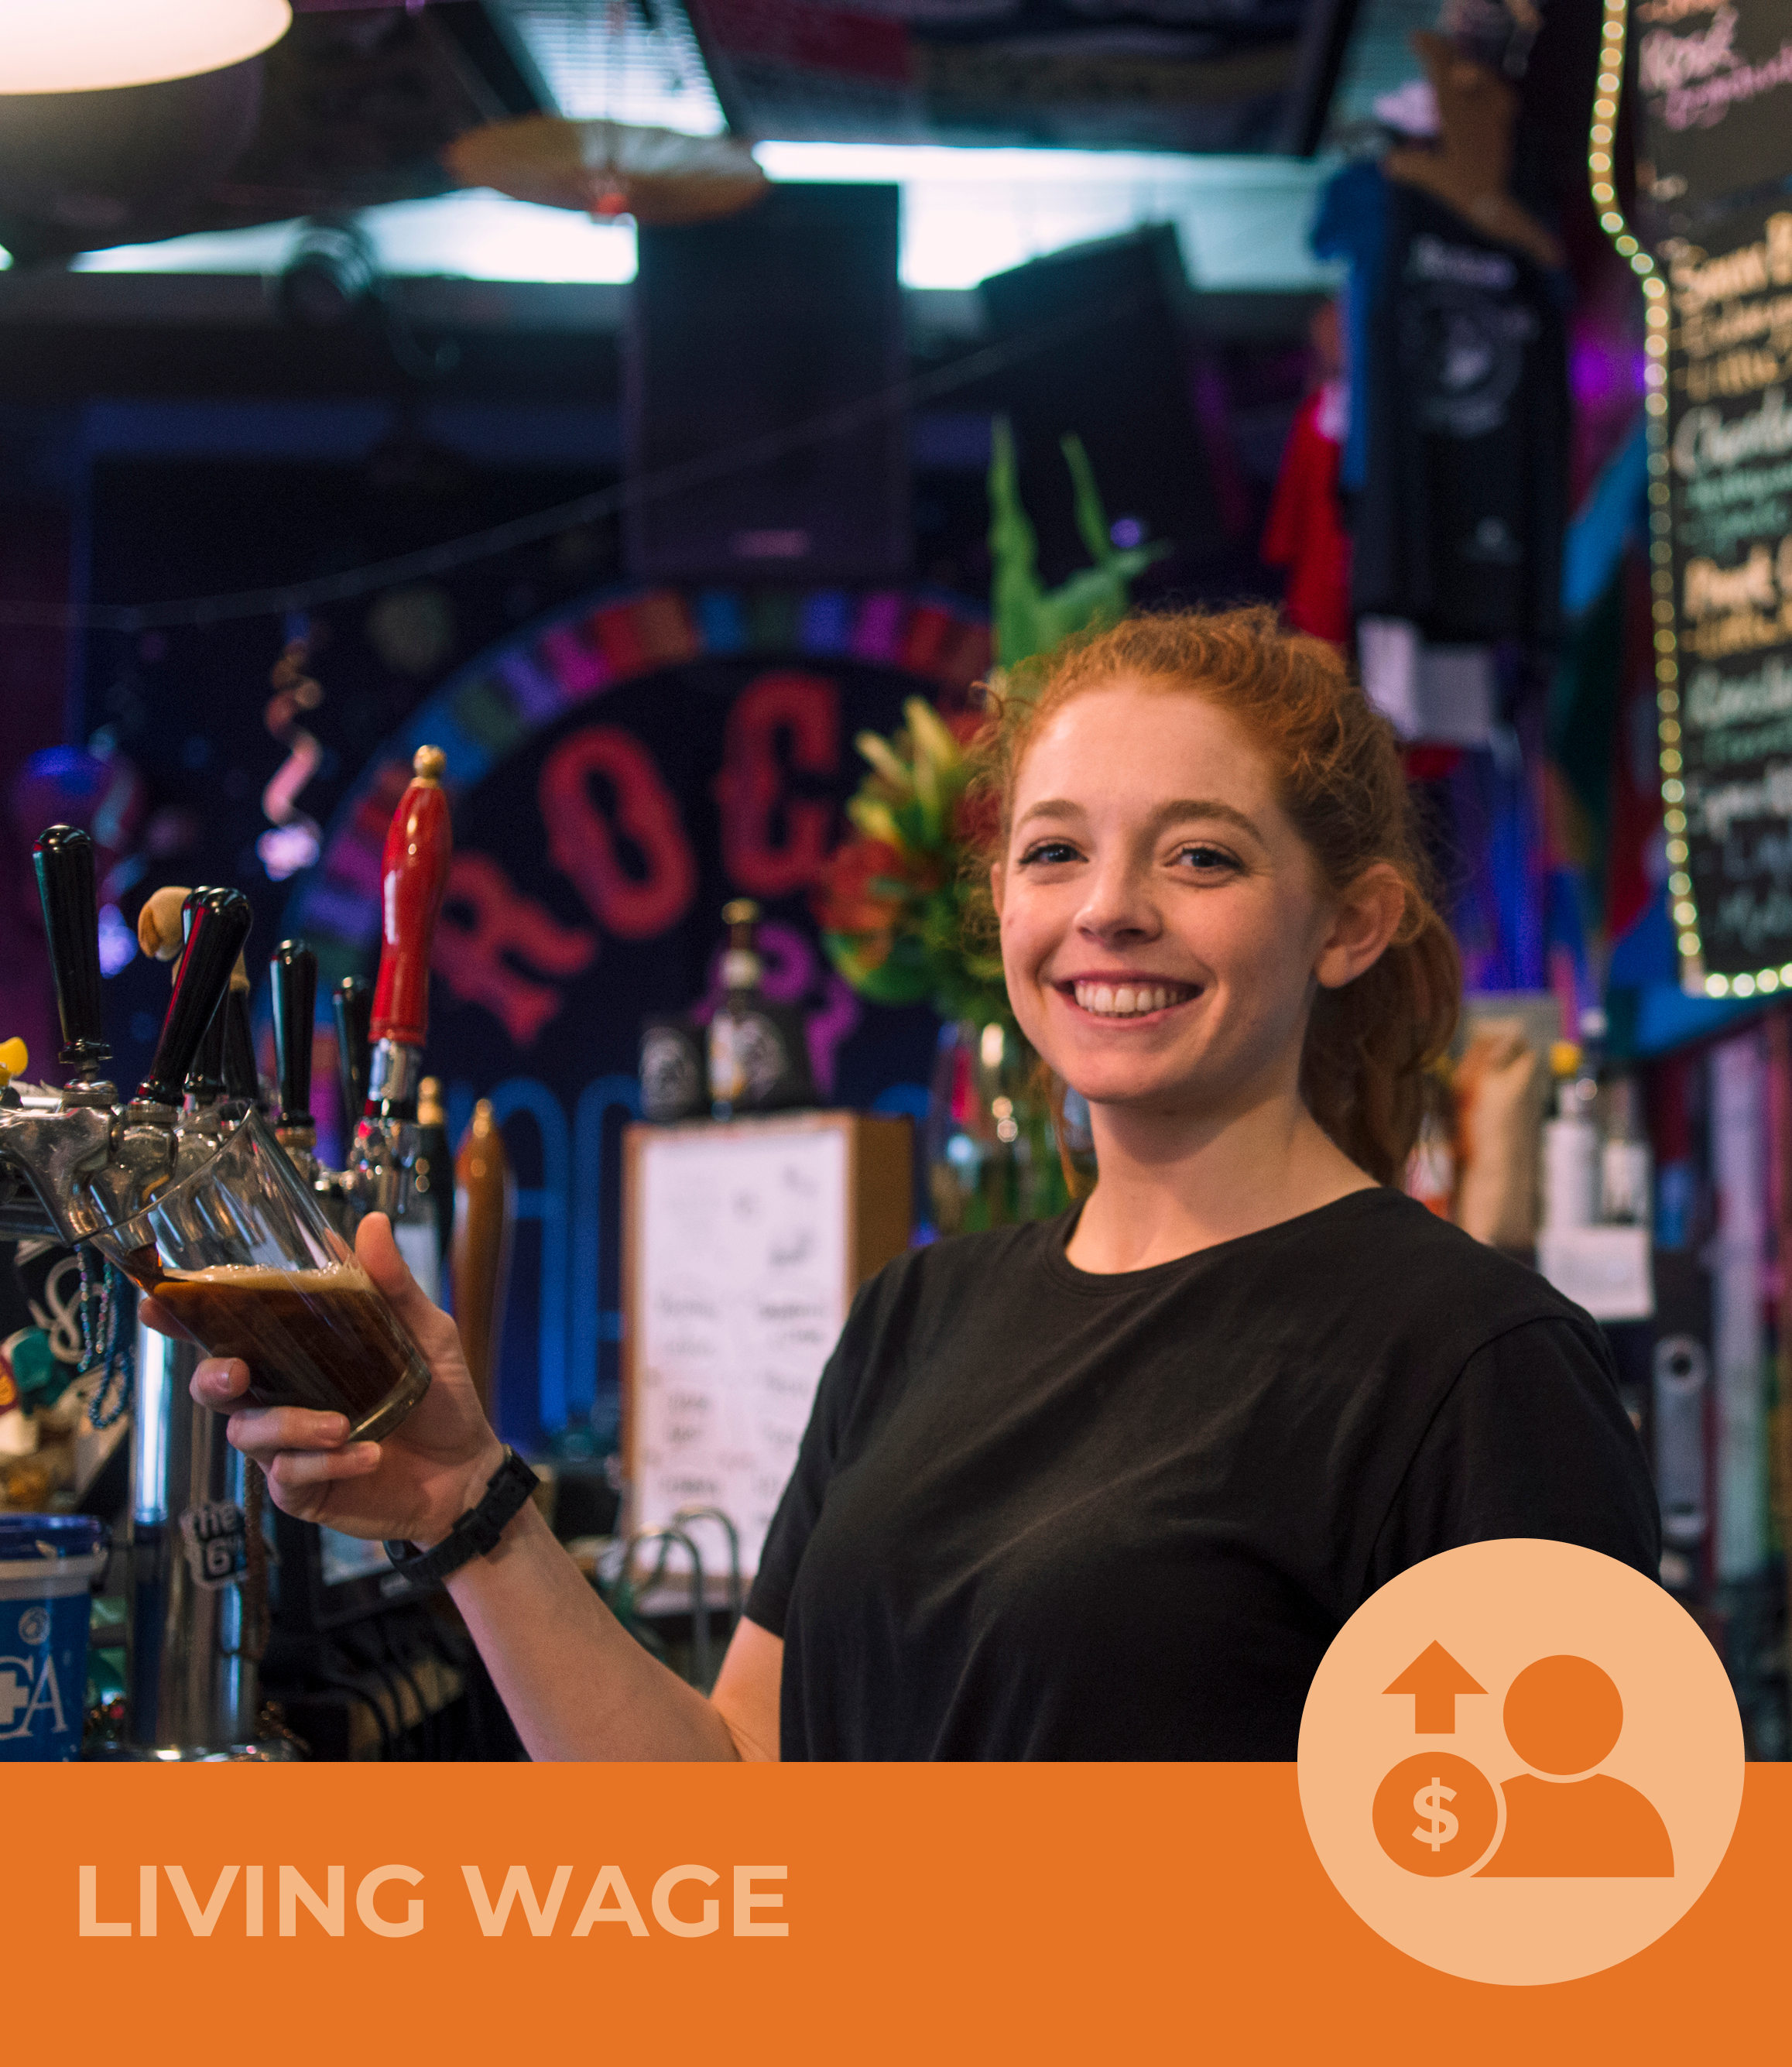 The CoGo effect:  Became Living Wage accredited   The impact:  All 19 staff at Rogue and Vagabond are now paid the Living Wage!